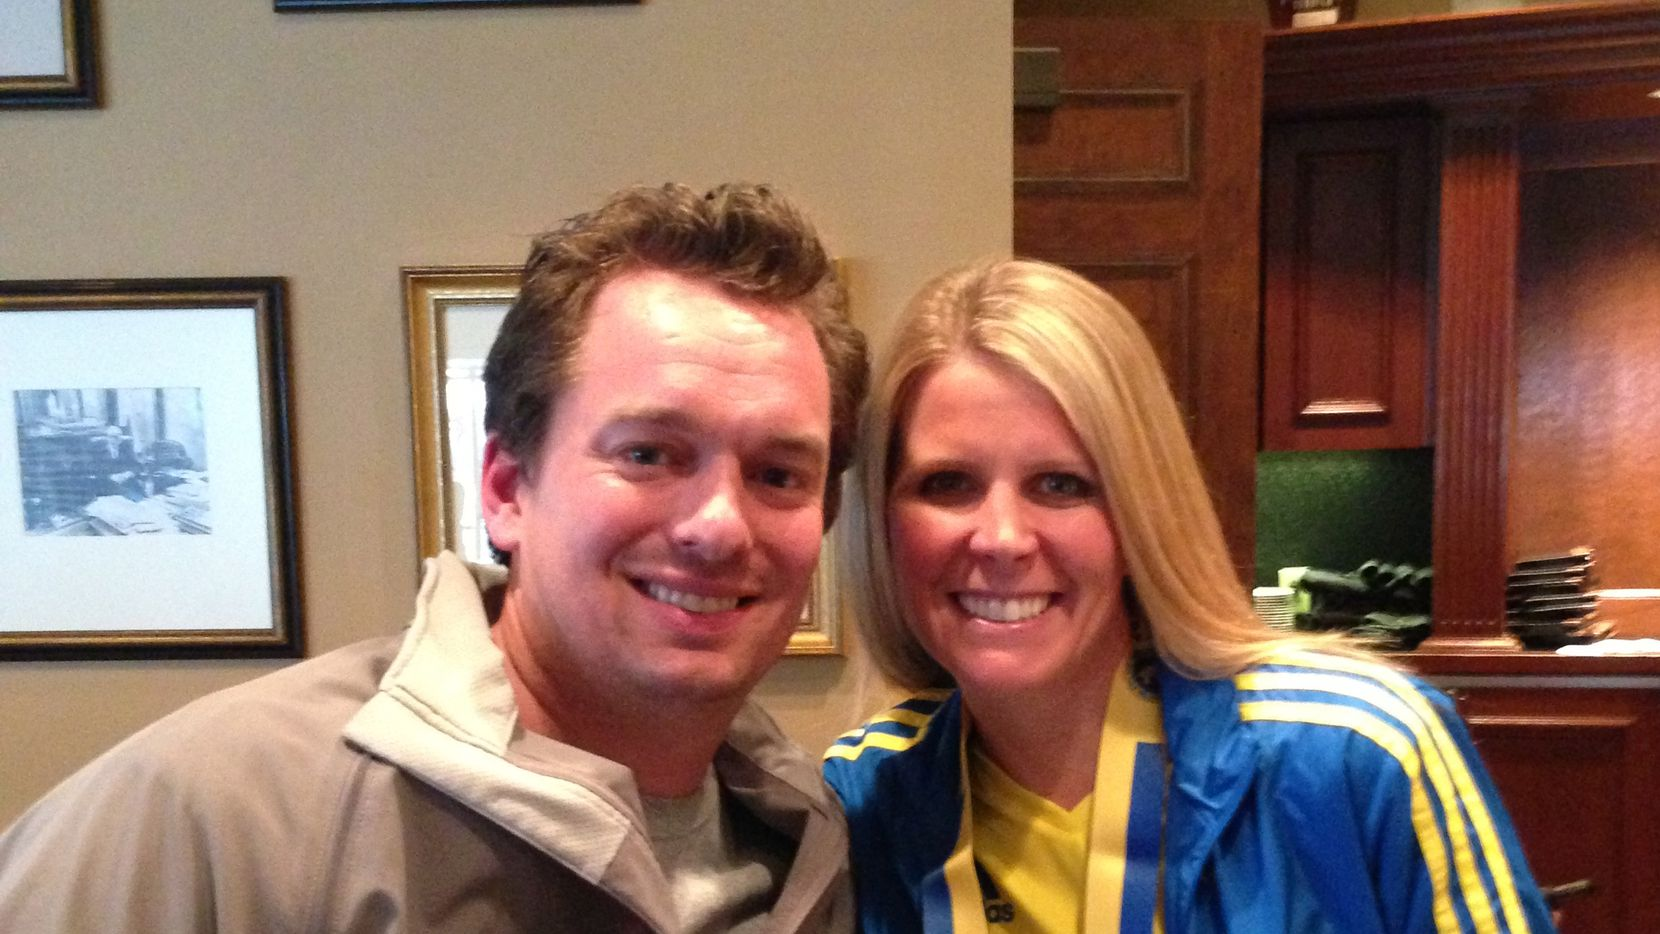 Paul Simon, the Texas Big Star race director, with his wife, Julie, who dreamed of bringing an endurance event to Frisco, pictured here at the Omni Parker House from their 2013 Boston Marathon race trip. Julie will be running the 2017 Boston Marathon two days after the Texas Star Half and 5K.